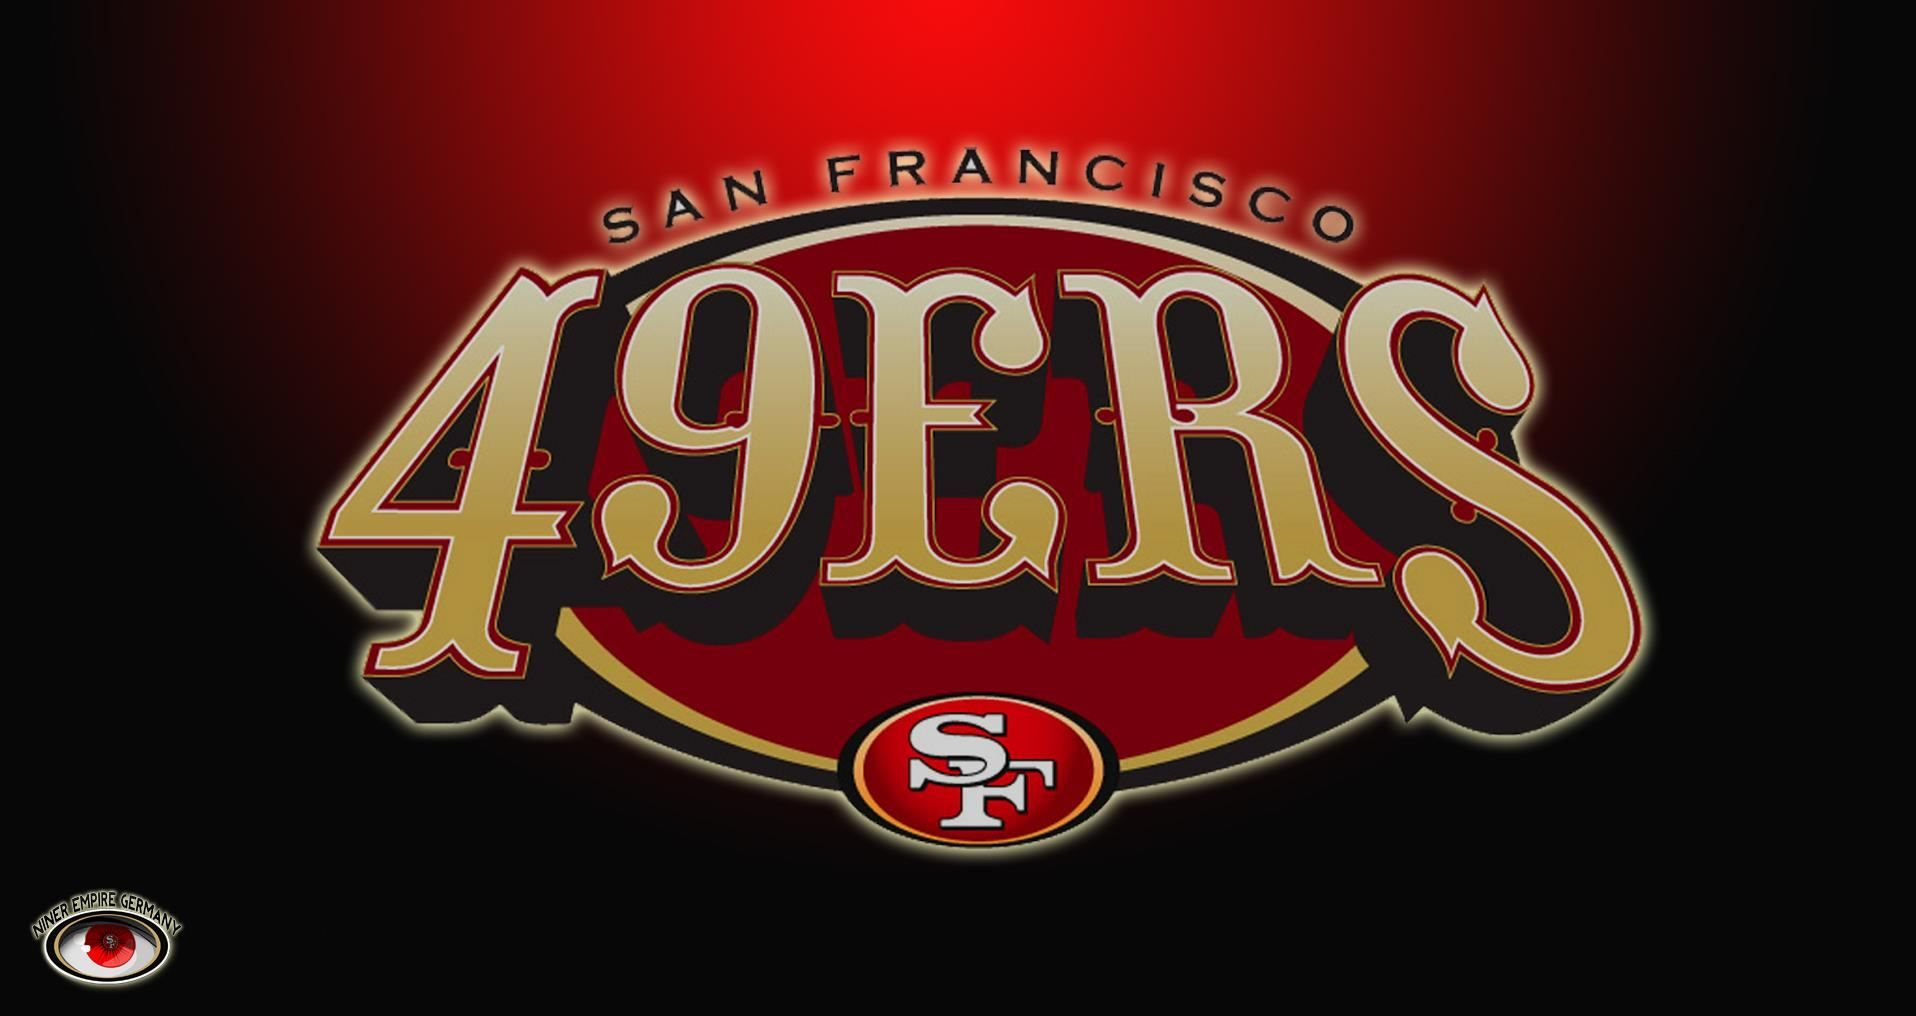 San Francisco Forty Niners (49ers) wallpaper hd free